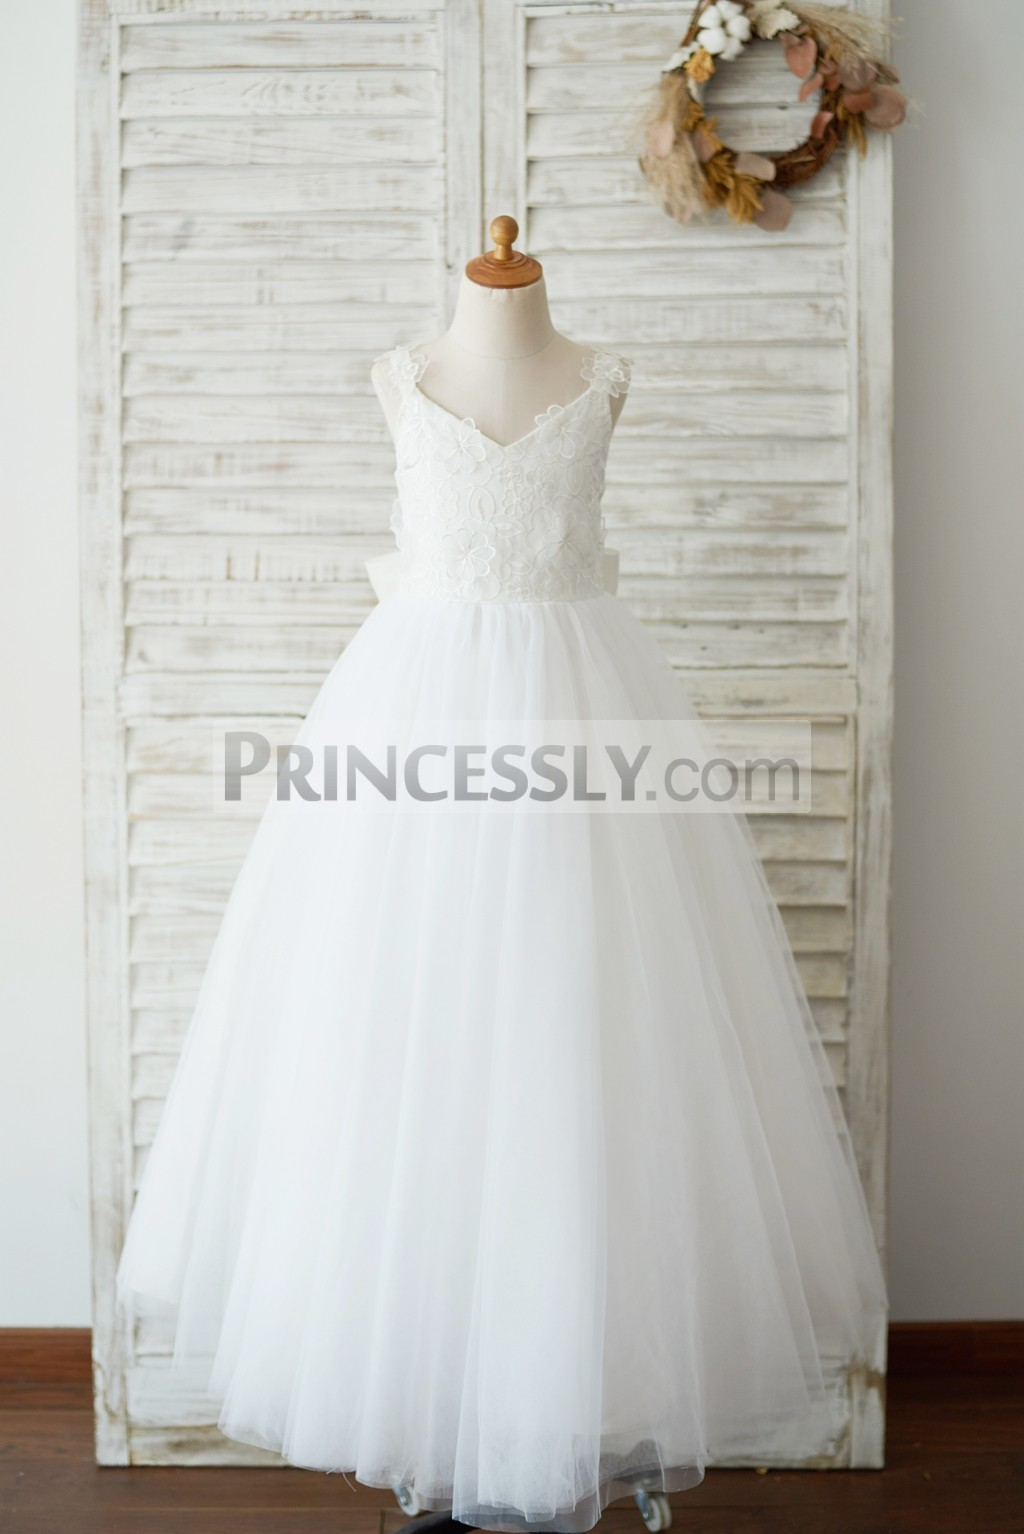 Princessly.com-K1003543-Ankle Length Ivory Lace Tulle 3D Flowers Wedding Flower Girl Dress with Big Bow-31